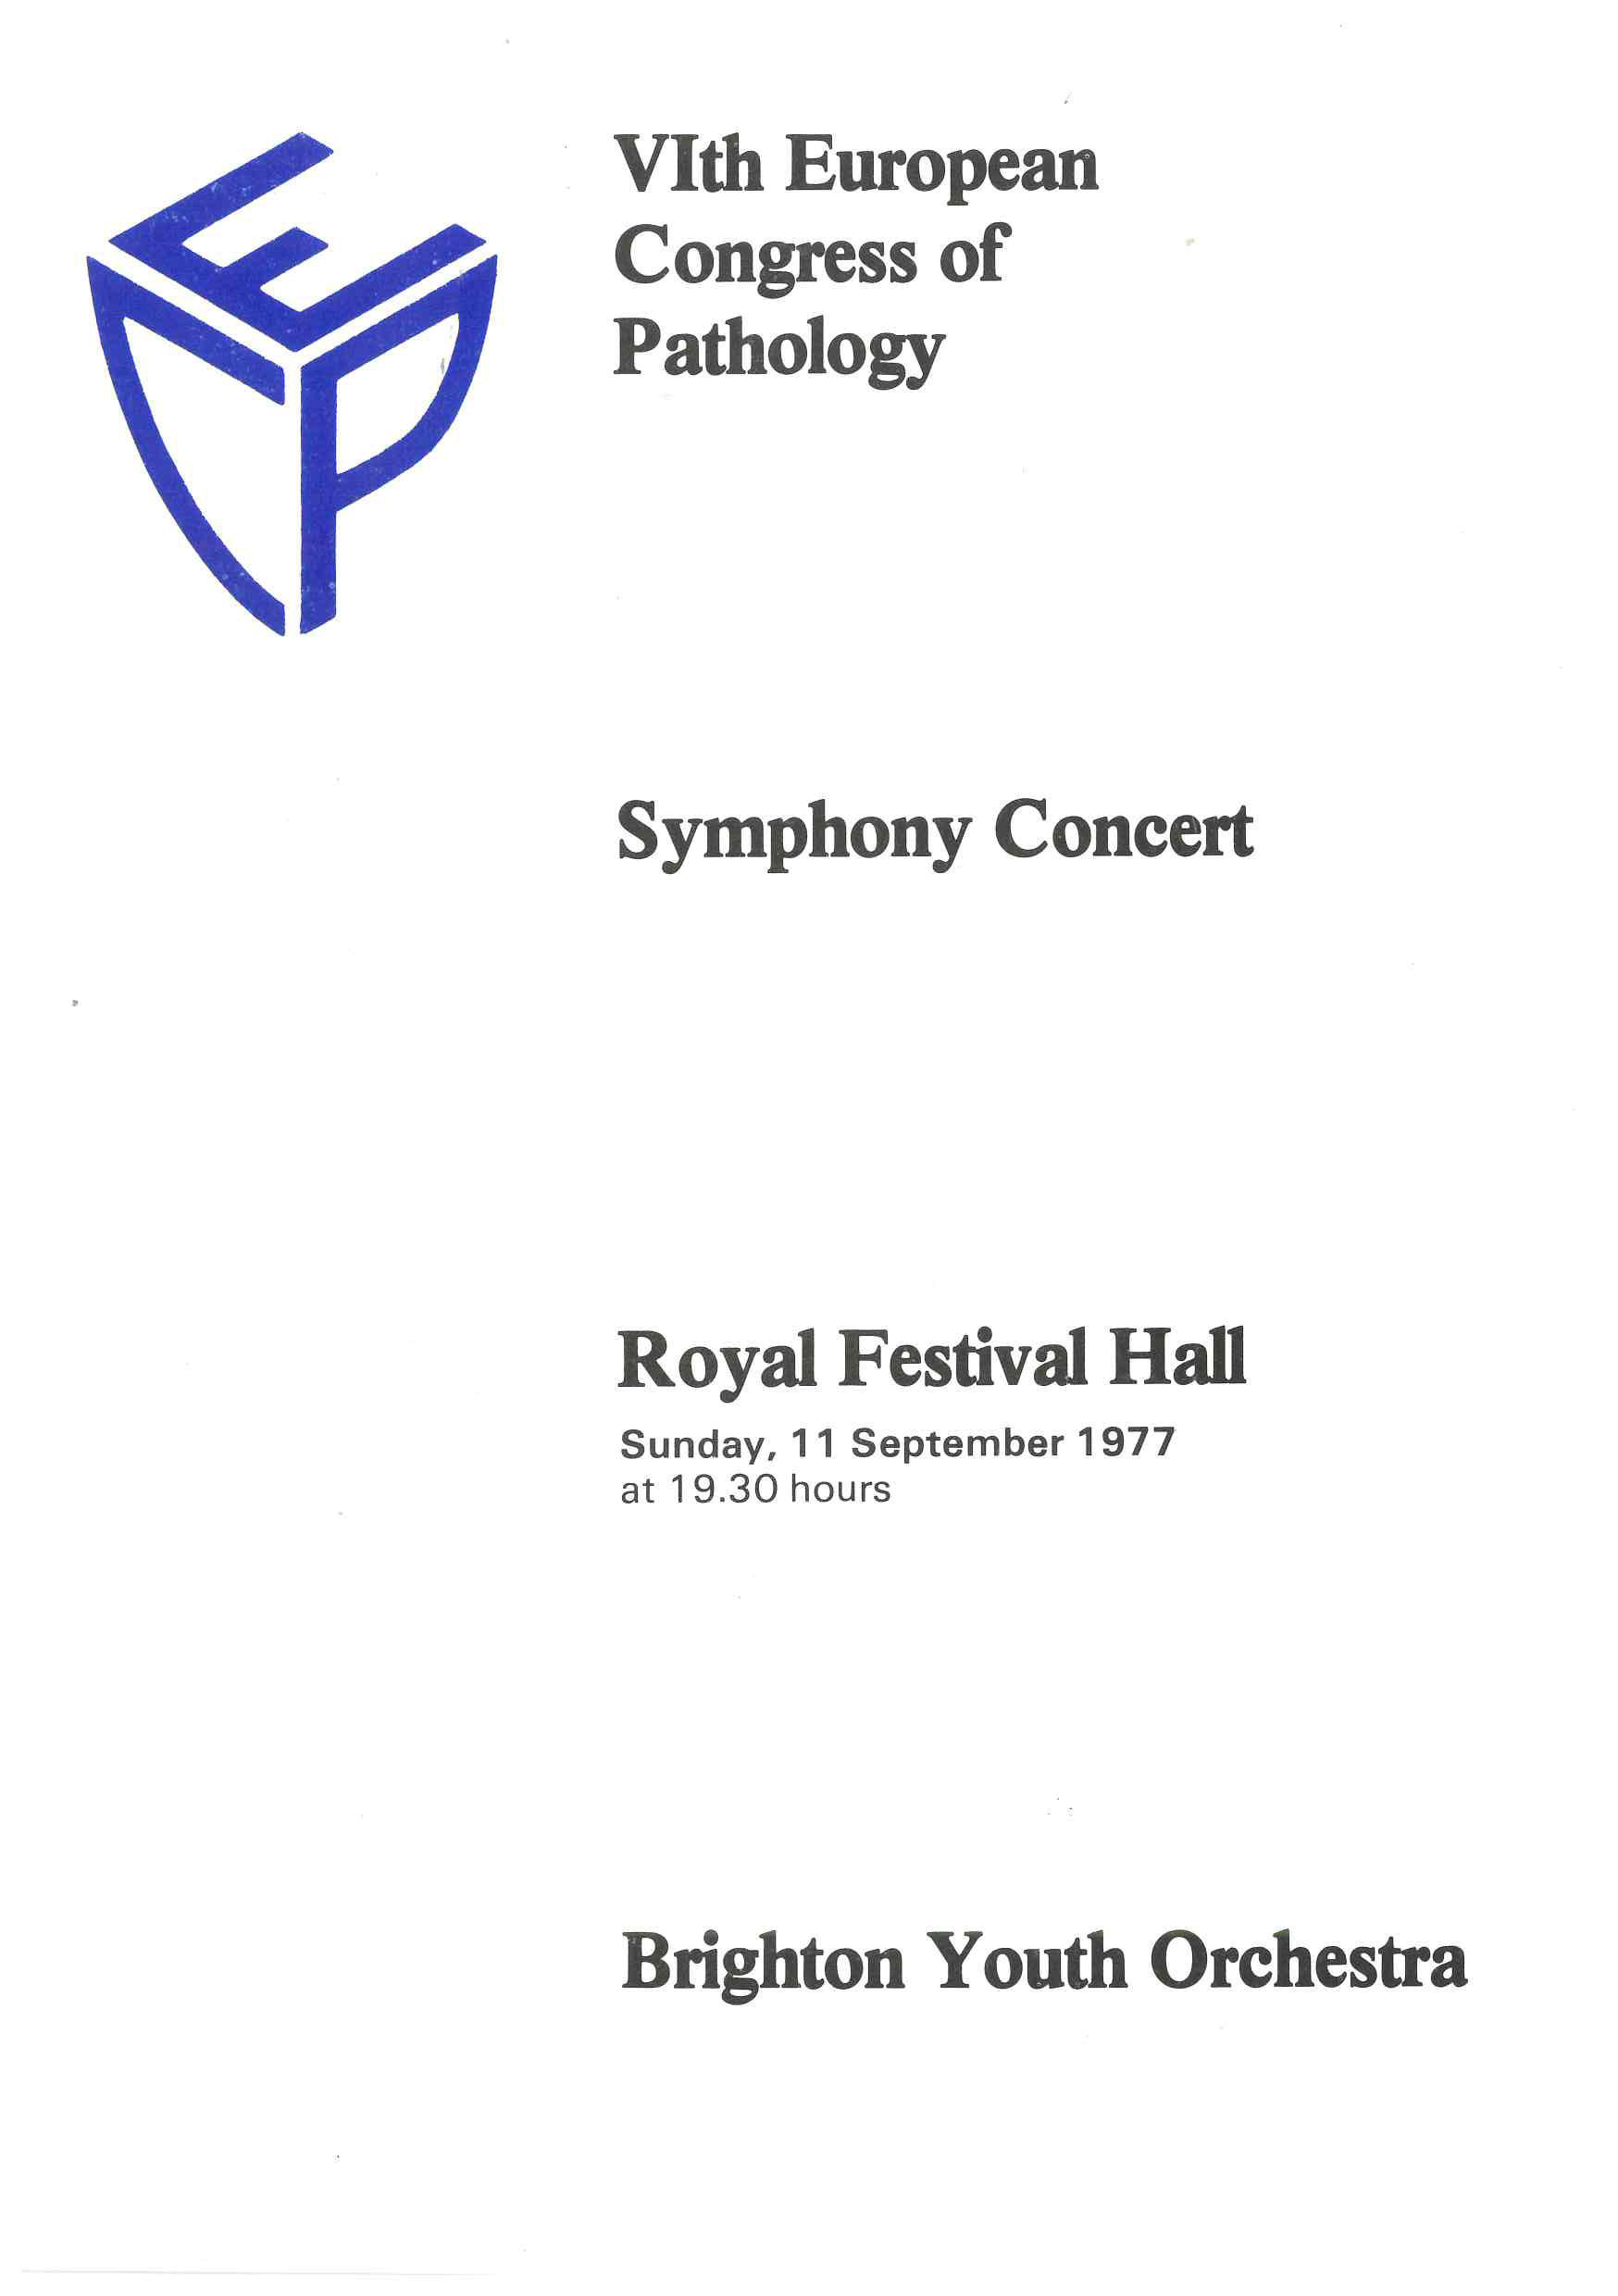 00114-Royal Festival Hall, 11th Sptrember 1977.jpg